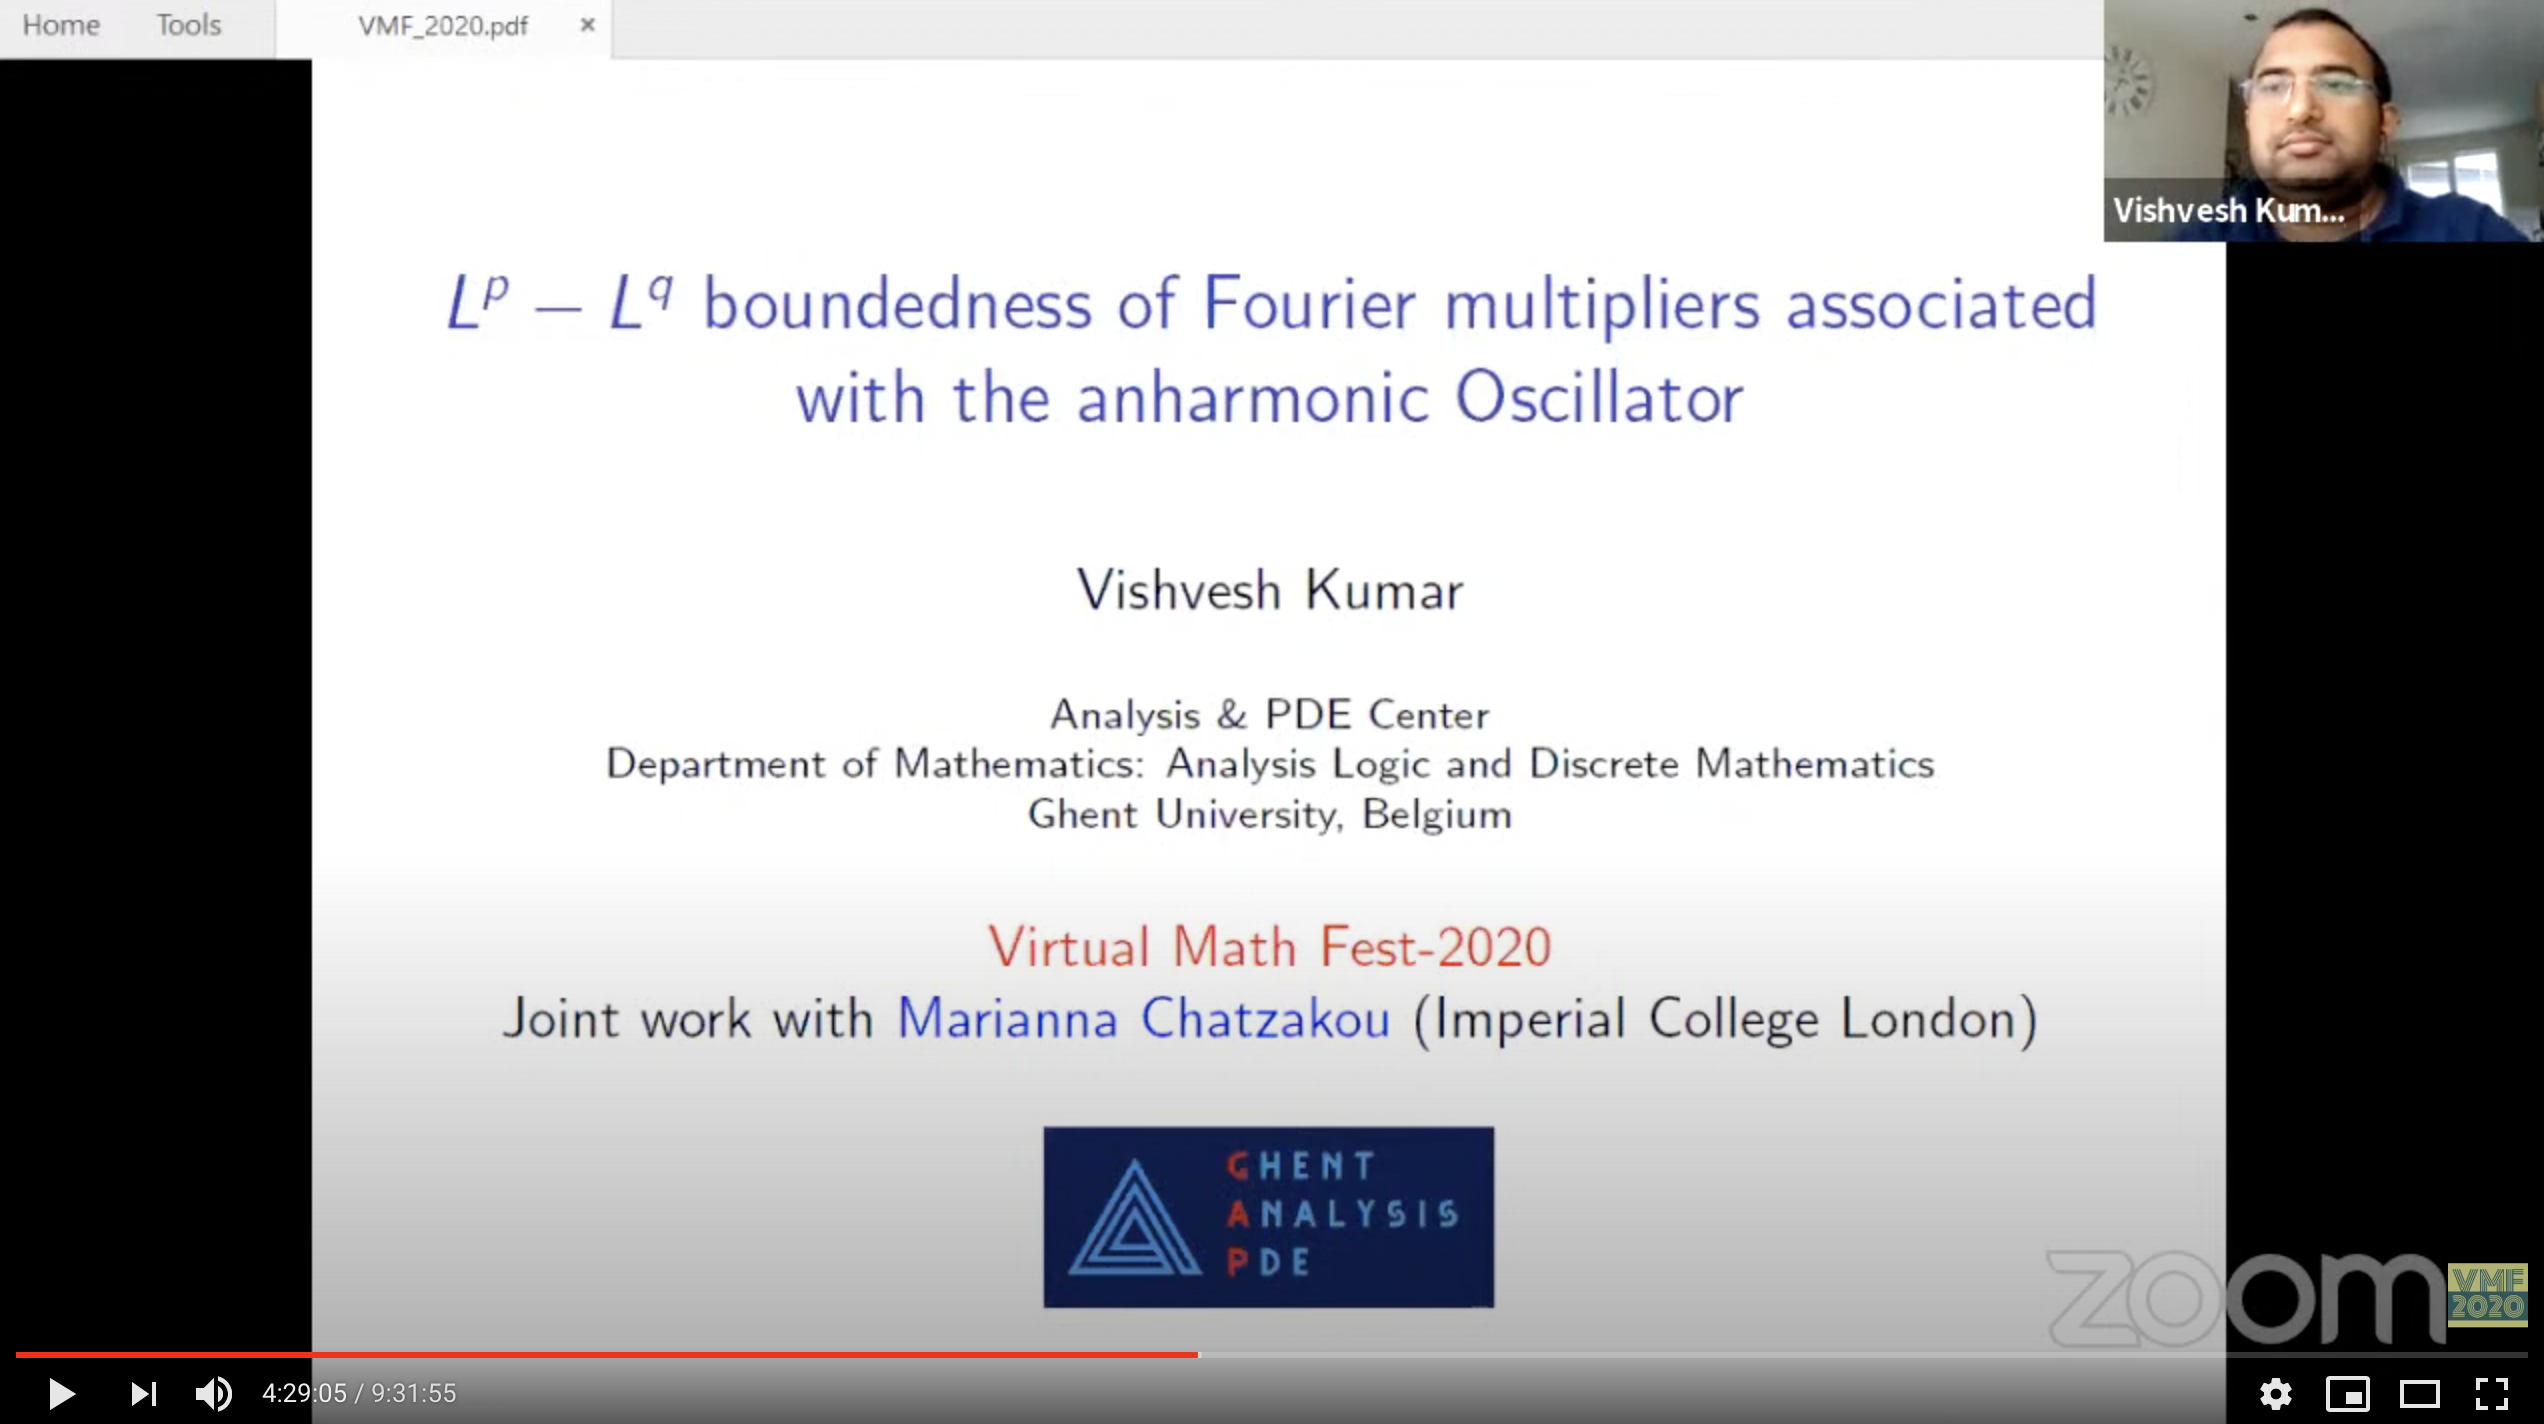 Vishvesh Kumar at Virtual Math Fest